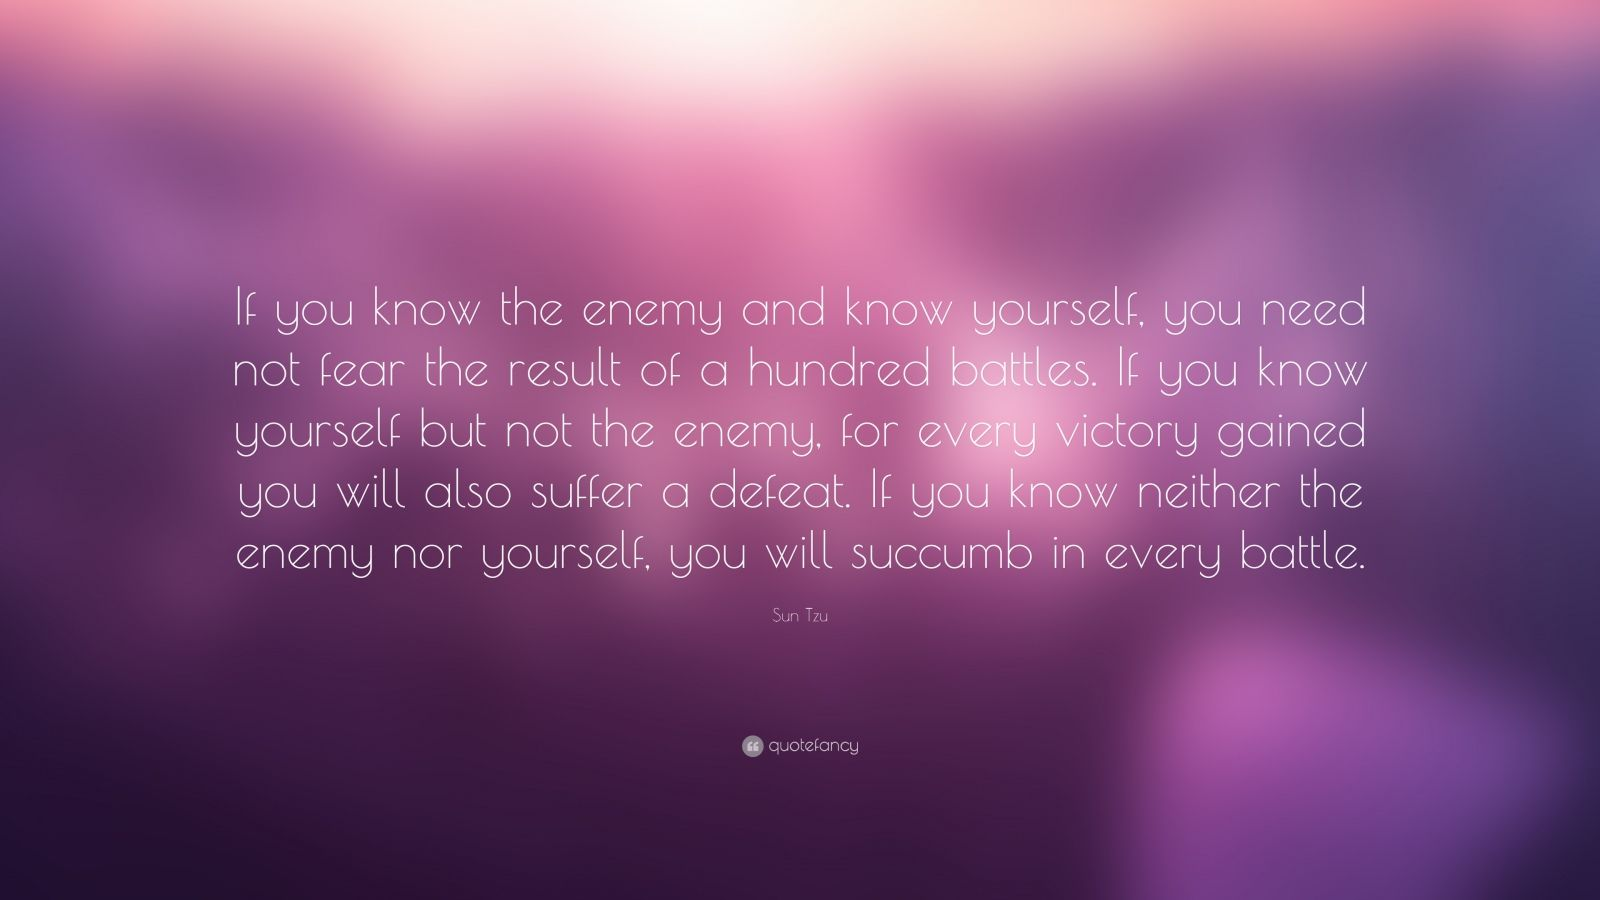 Zen Quote Wallpaper Sun Tzu Quote If You Know The Enemy And Know Yourself